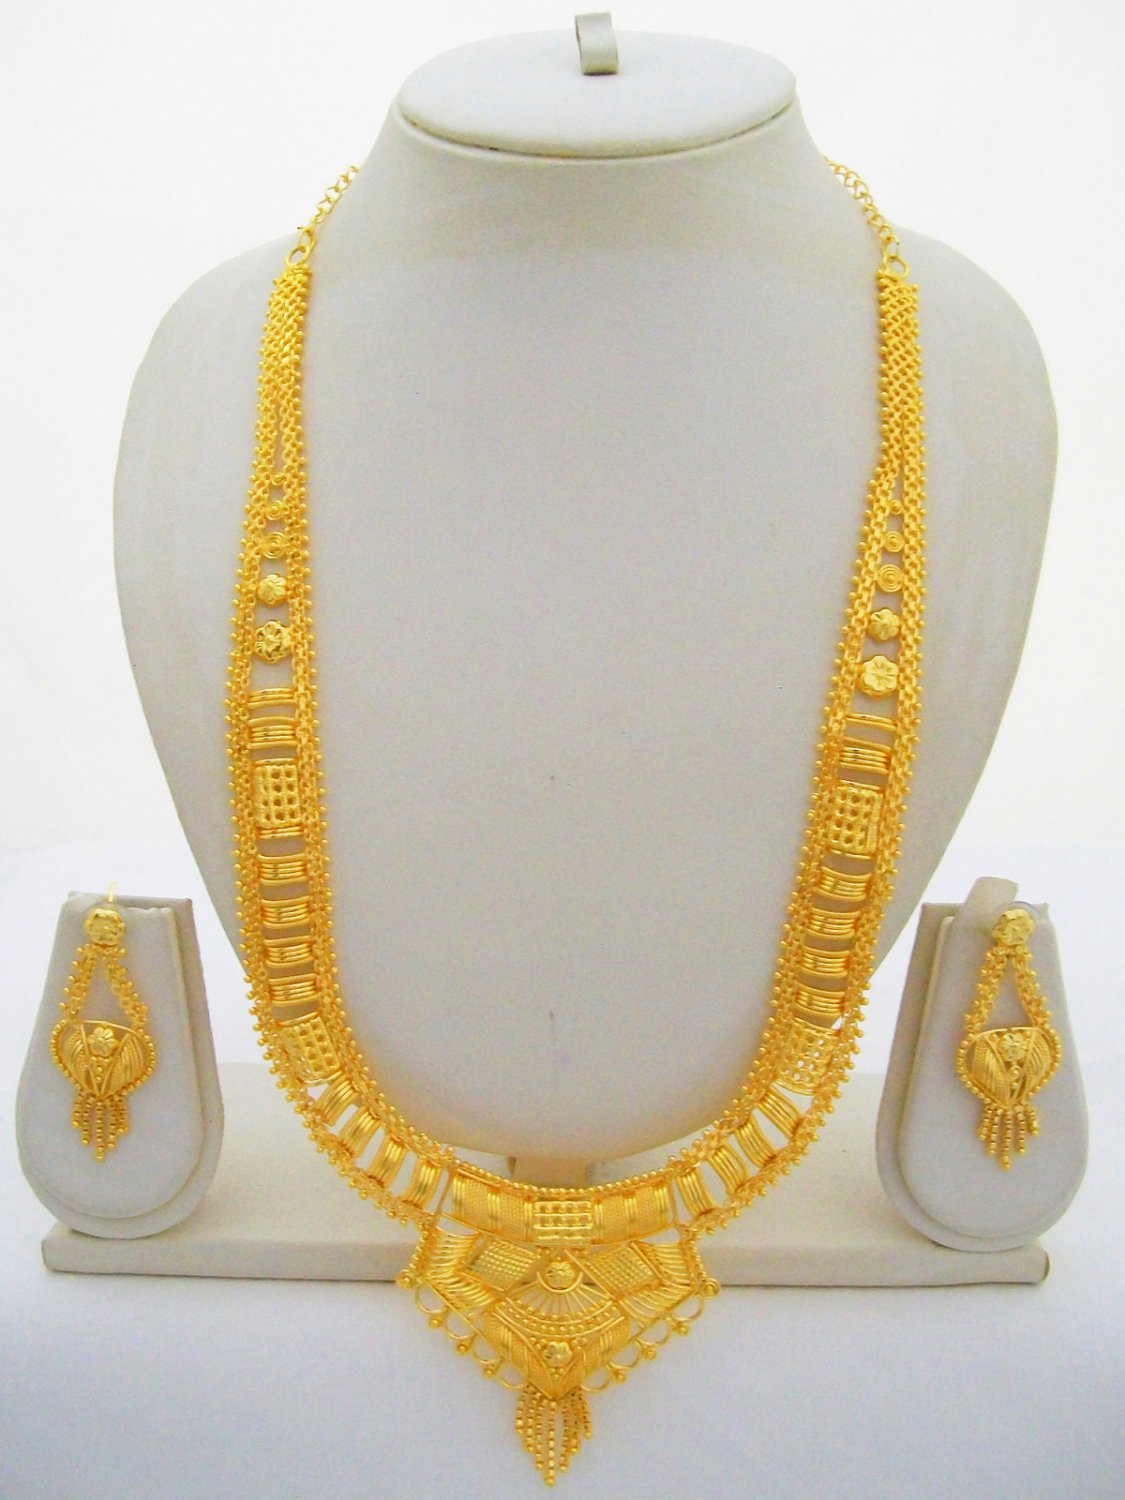 Rani Haar Gold Plated Necklace Vintage Indian Filigree Long Jewelry Set